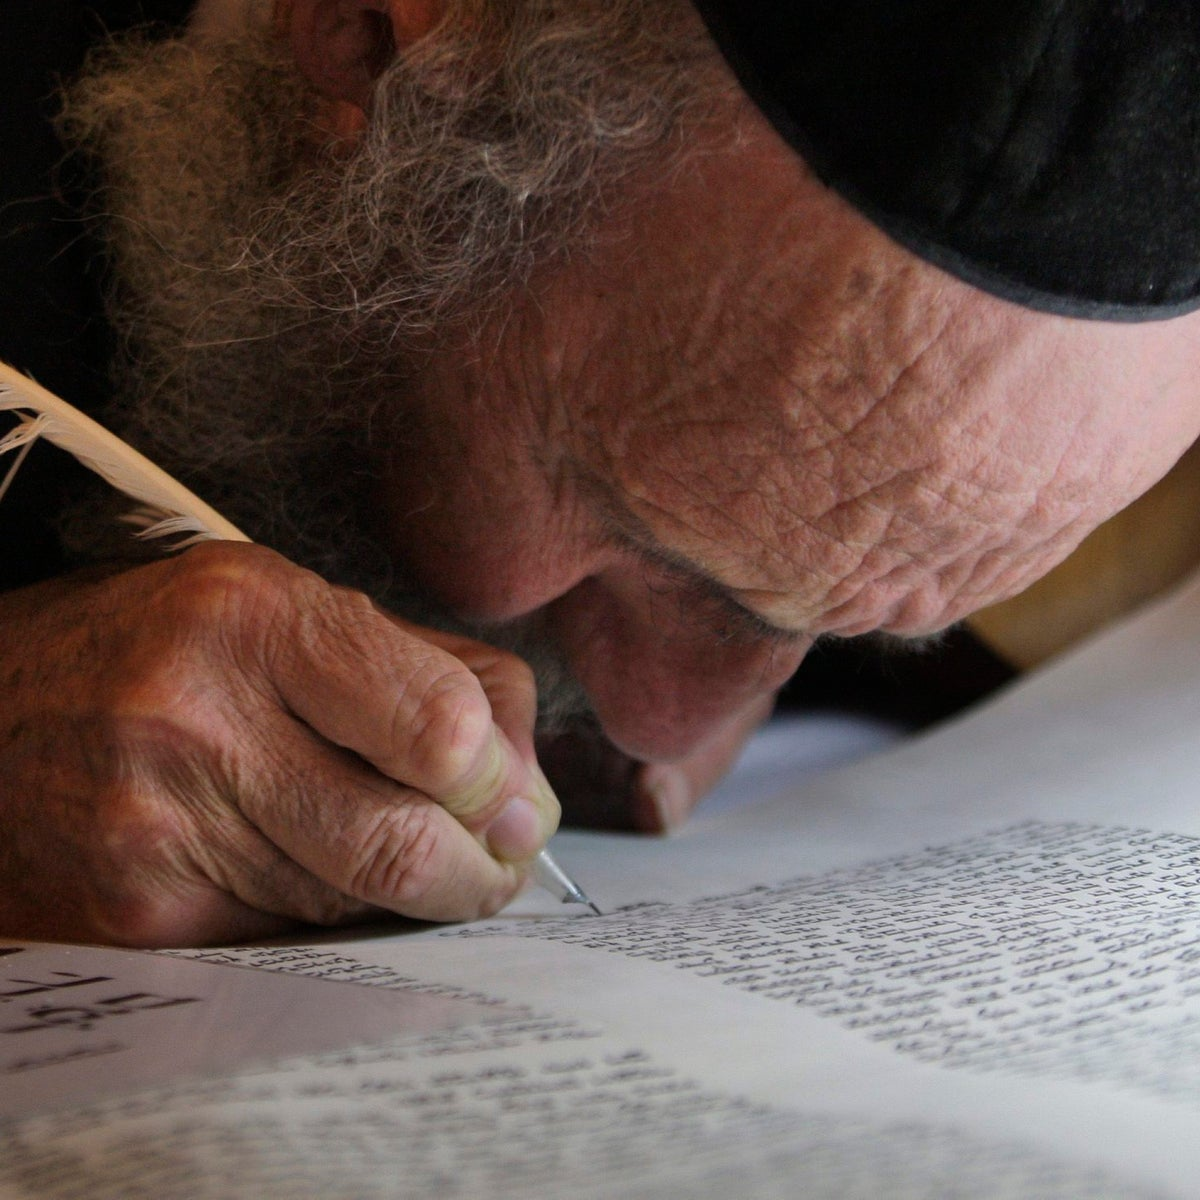 In this Sunday, March 14, 2010 file photo, an ultra-Orthodox Jewish man writes some of the last words in a Torah scroll before it is taken from the Western Wall into the Hurva synagogue in Jerusalem's Old City.